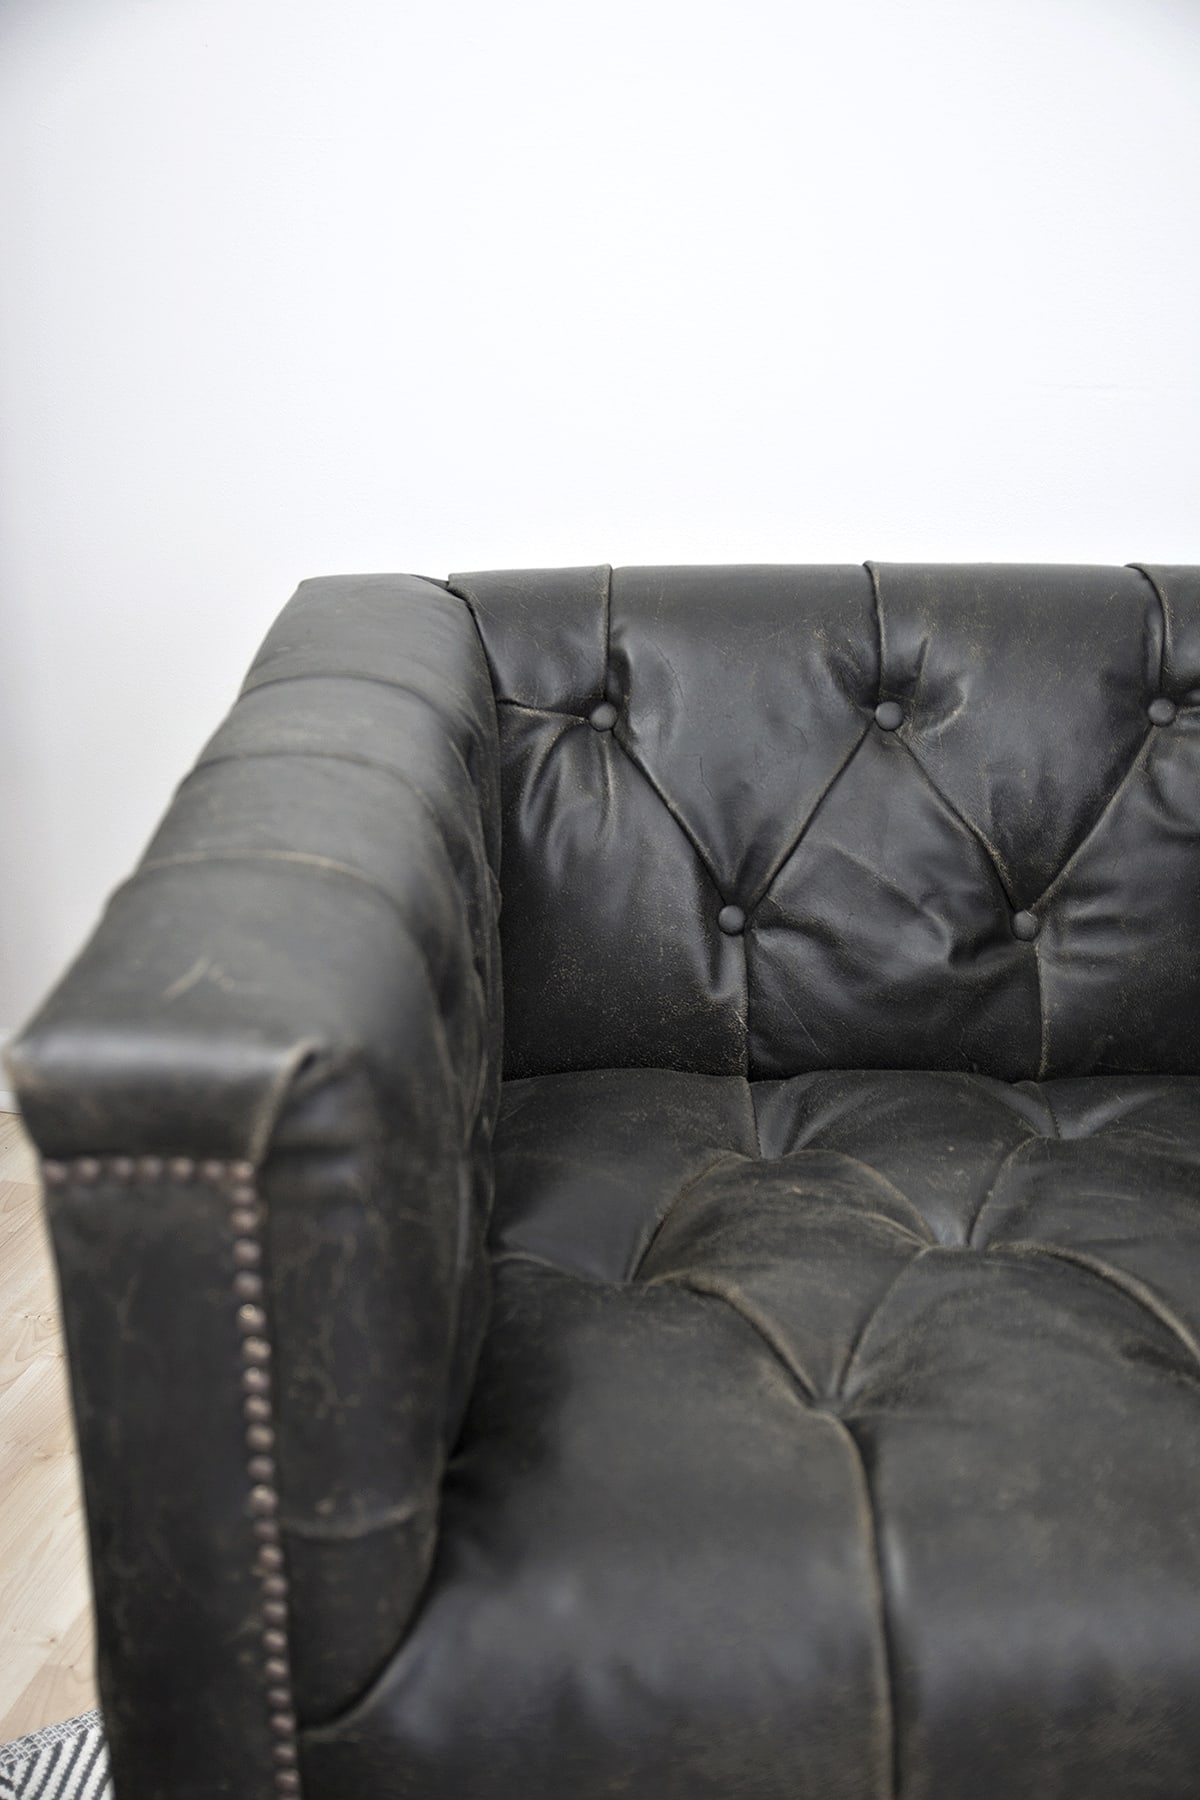 distressed leather furniture to hide cat scratches